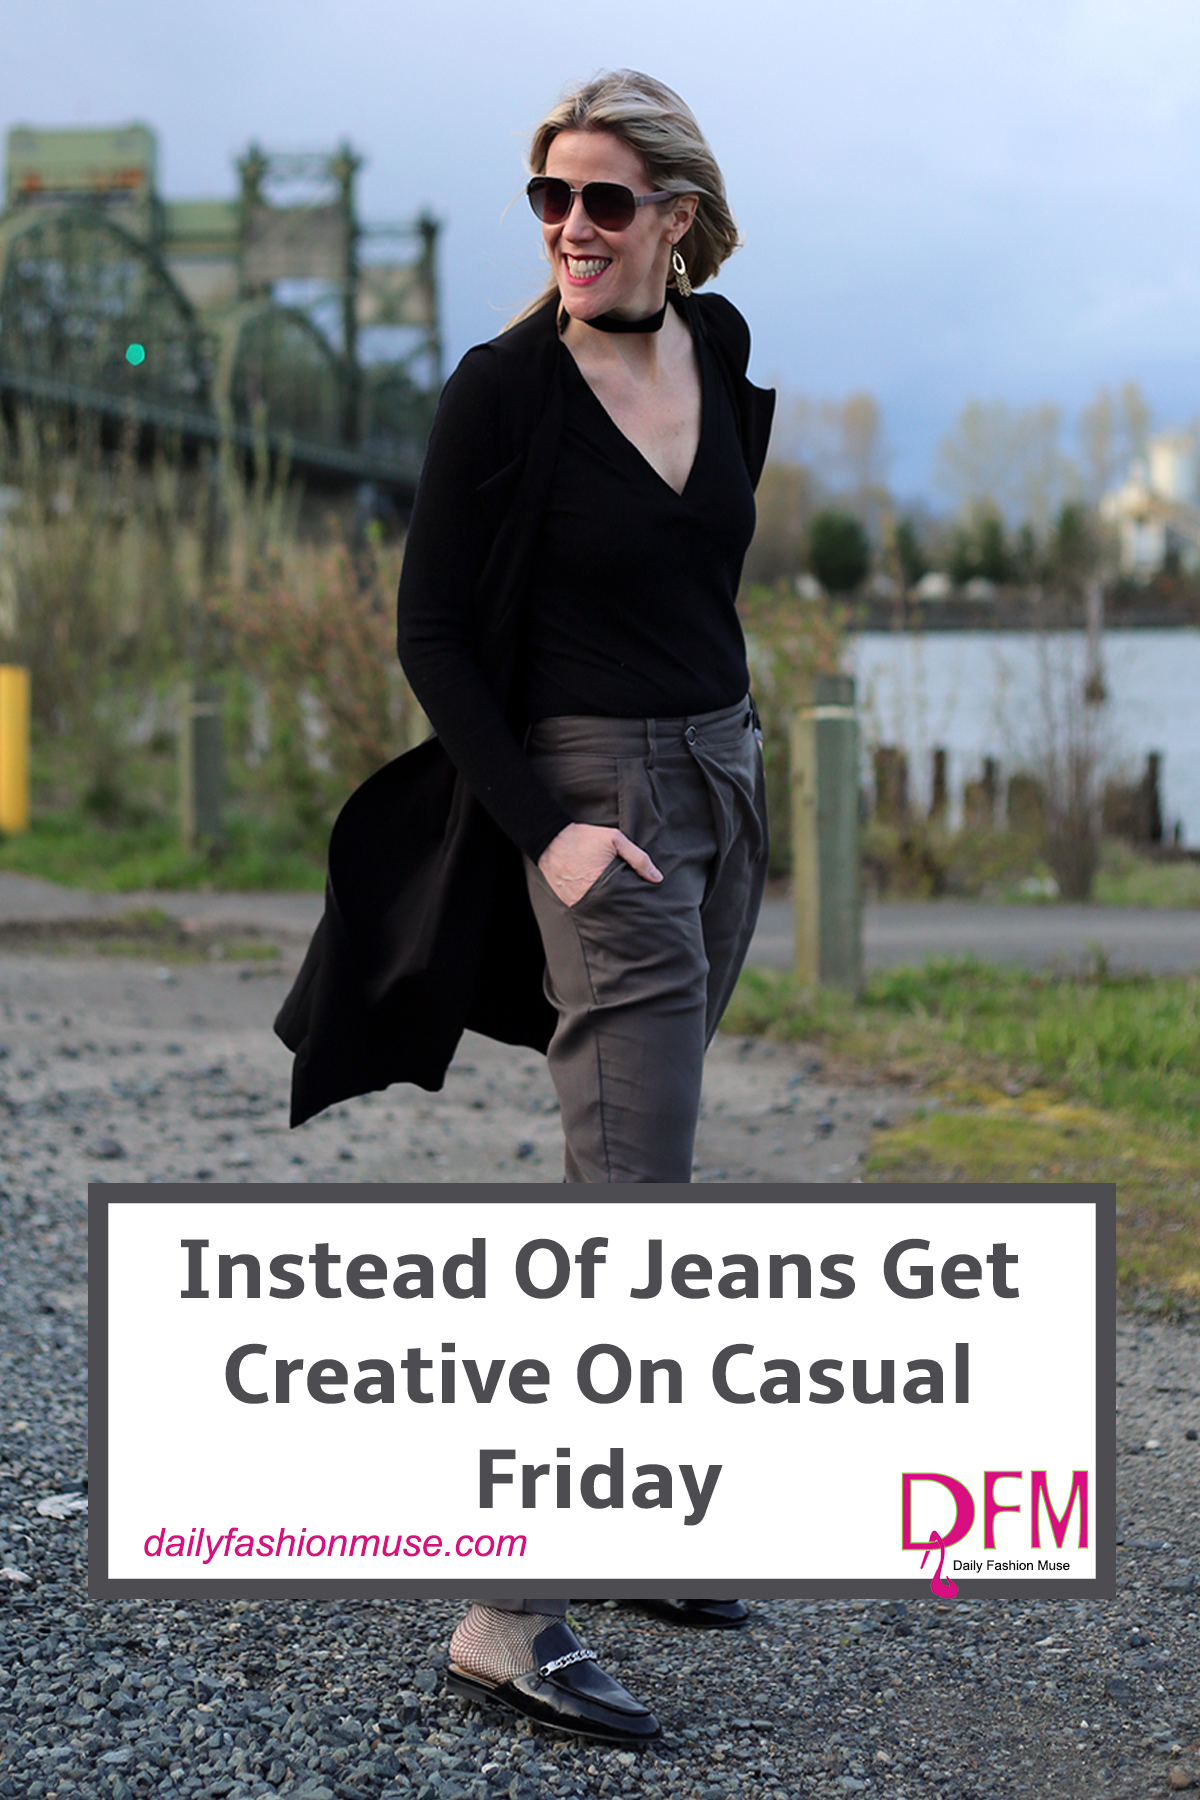 If your office only allows casual outfits on Fridays, instead of reaching for jeans, get a bit more creative. Here is a chance to test out a new style.